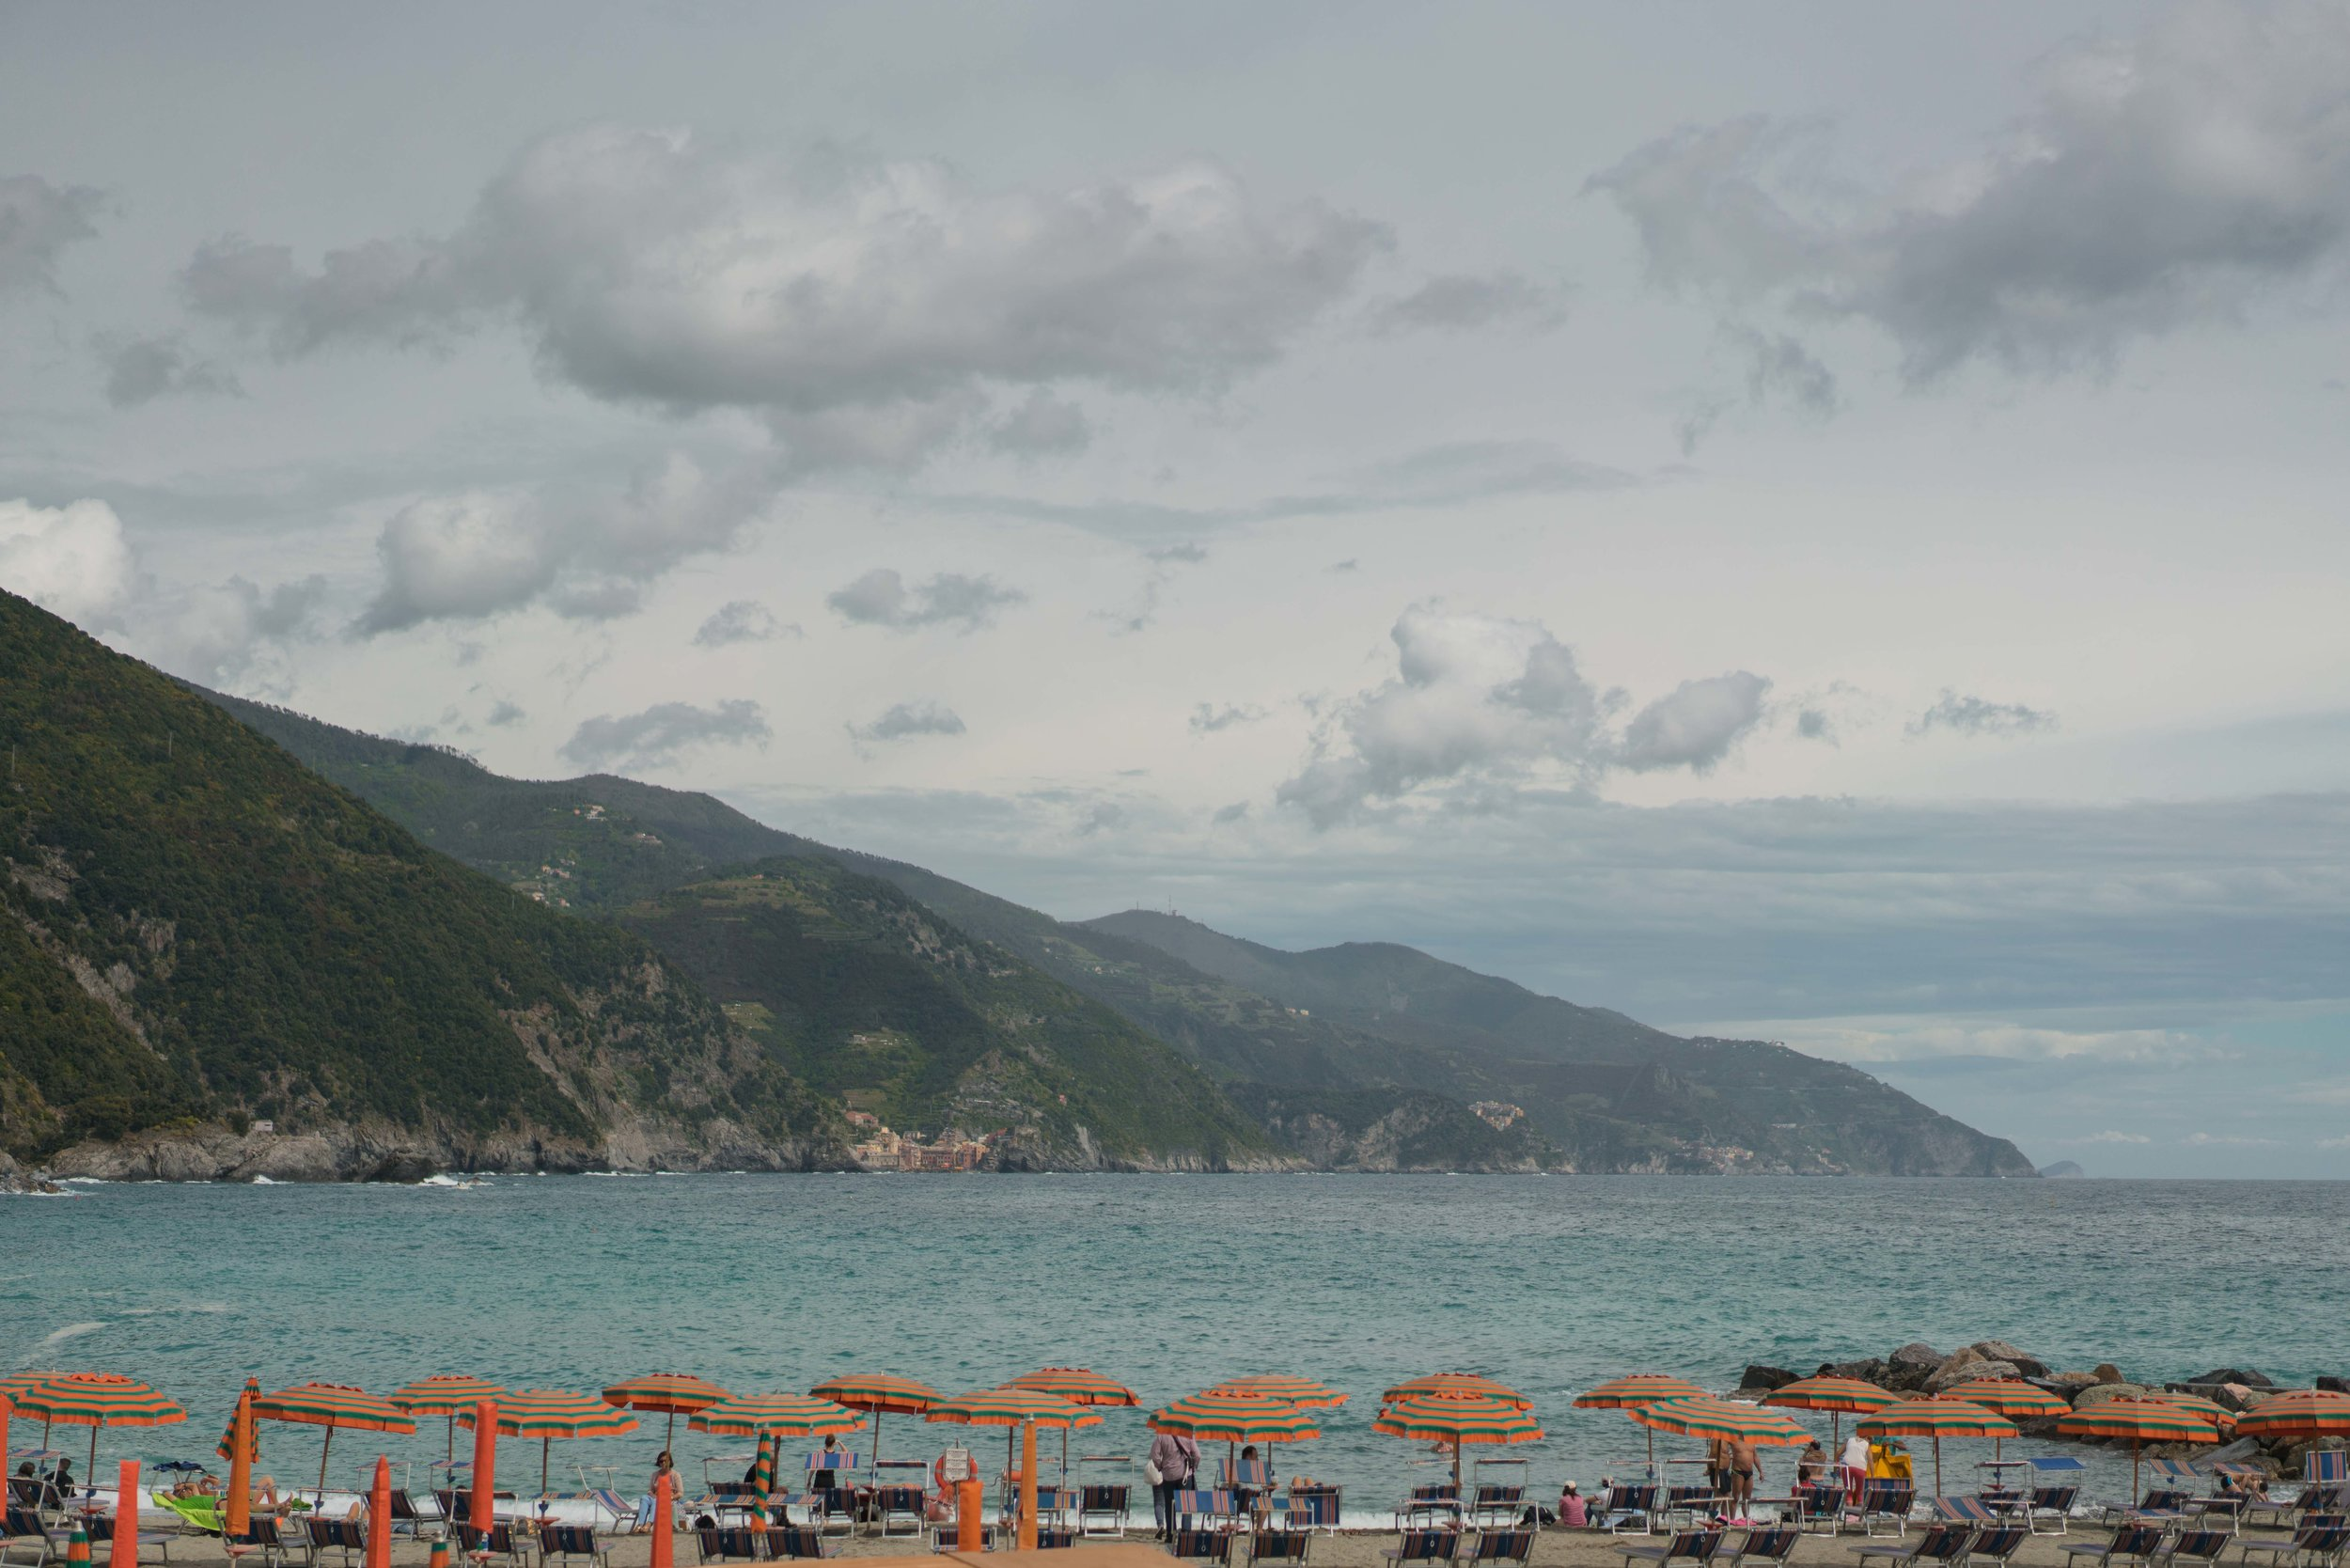 Holiday in Italy - Day 7 Cinque Terre Vernazza - Sony A7R2 -- 105.jpg